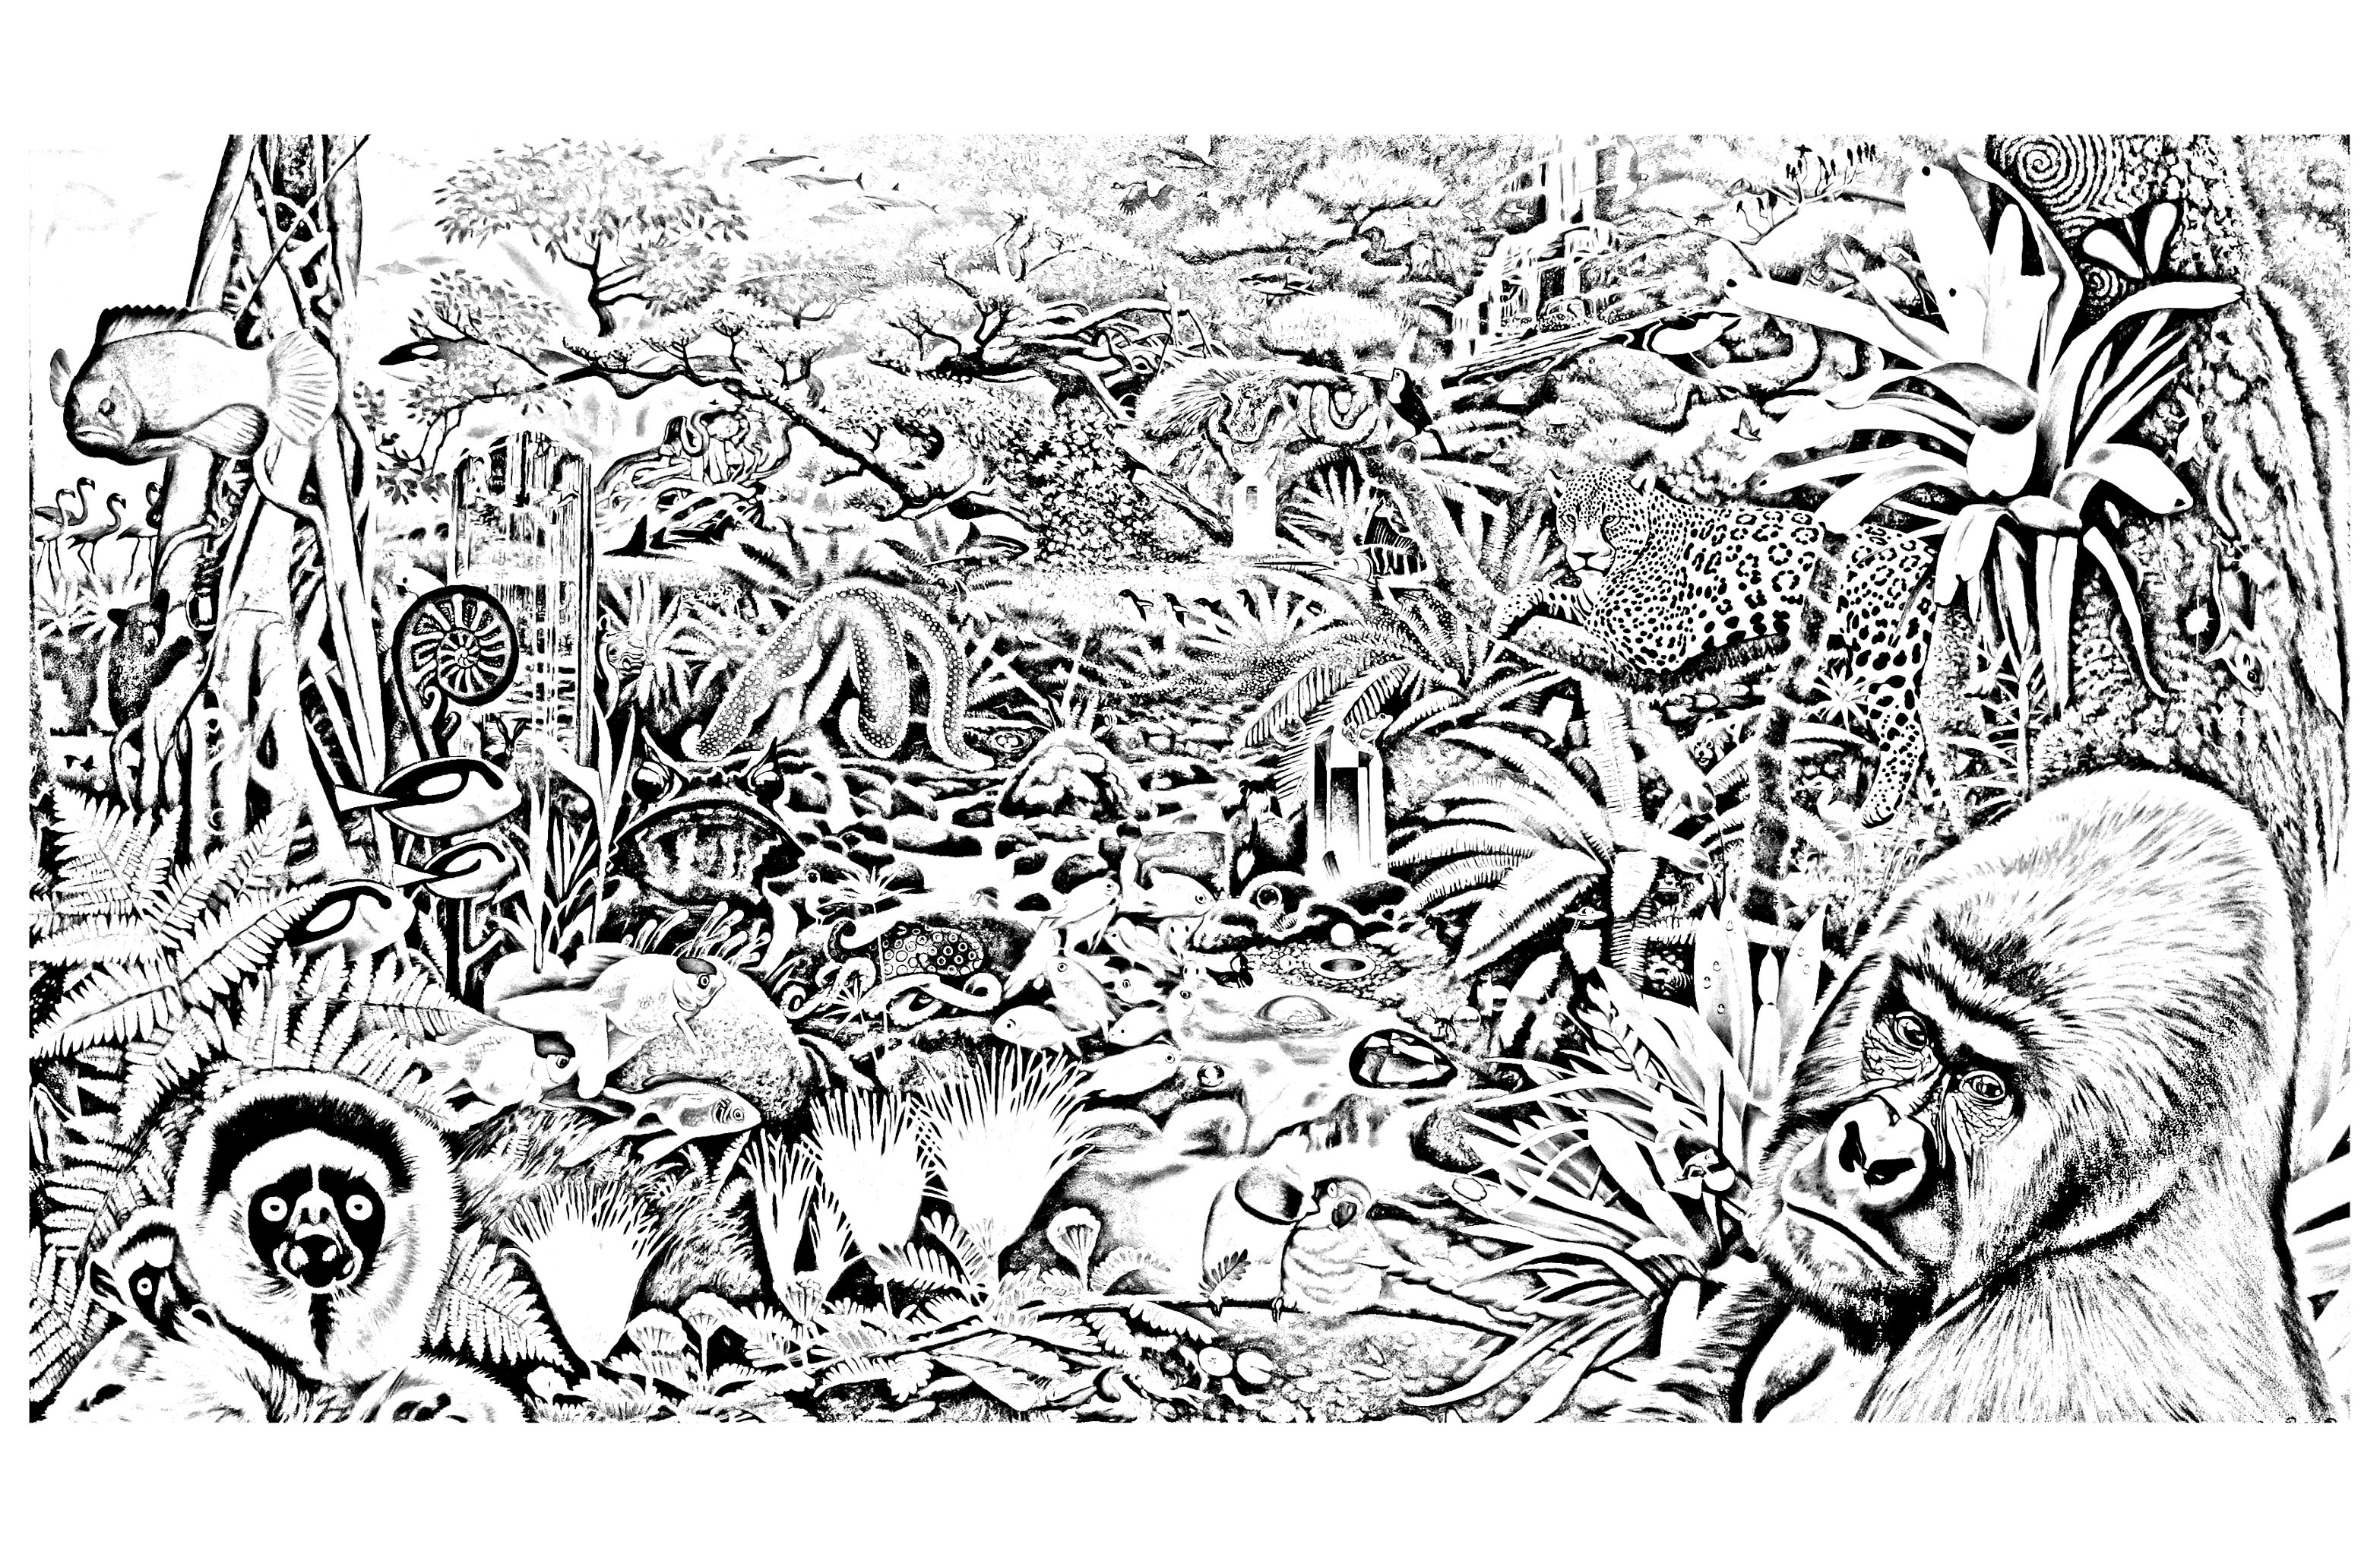 printable jungle animals coloring pages printable jungle animals coloring pages jungle animals coloring animals printable jungle pages